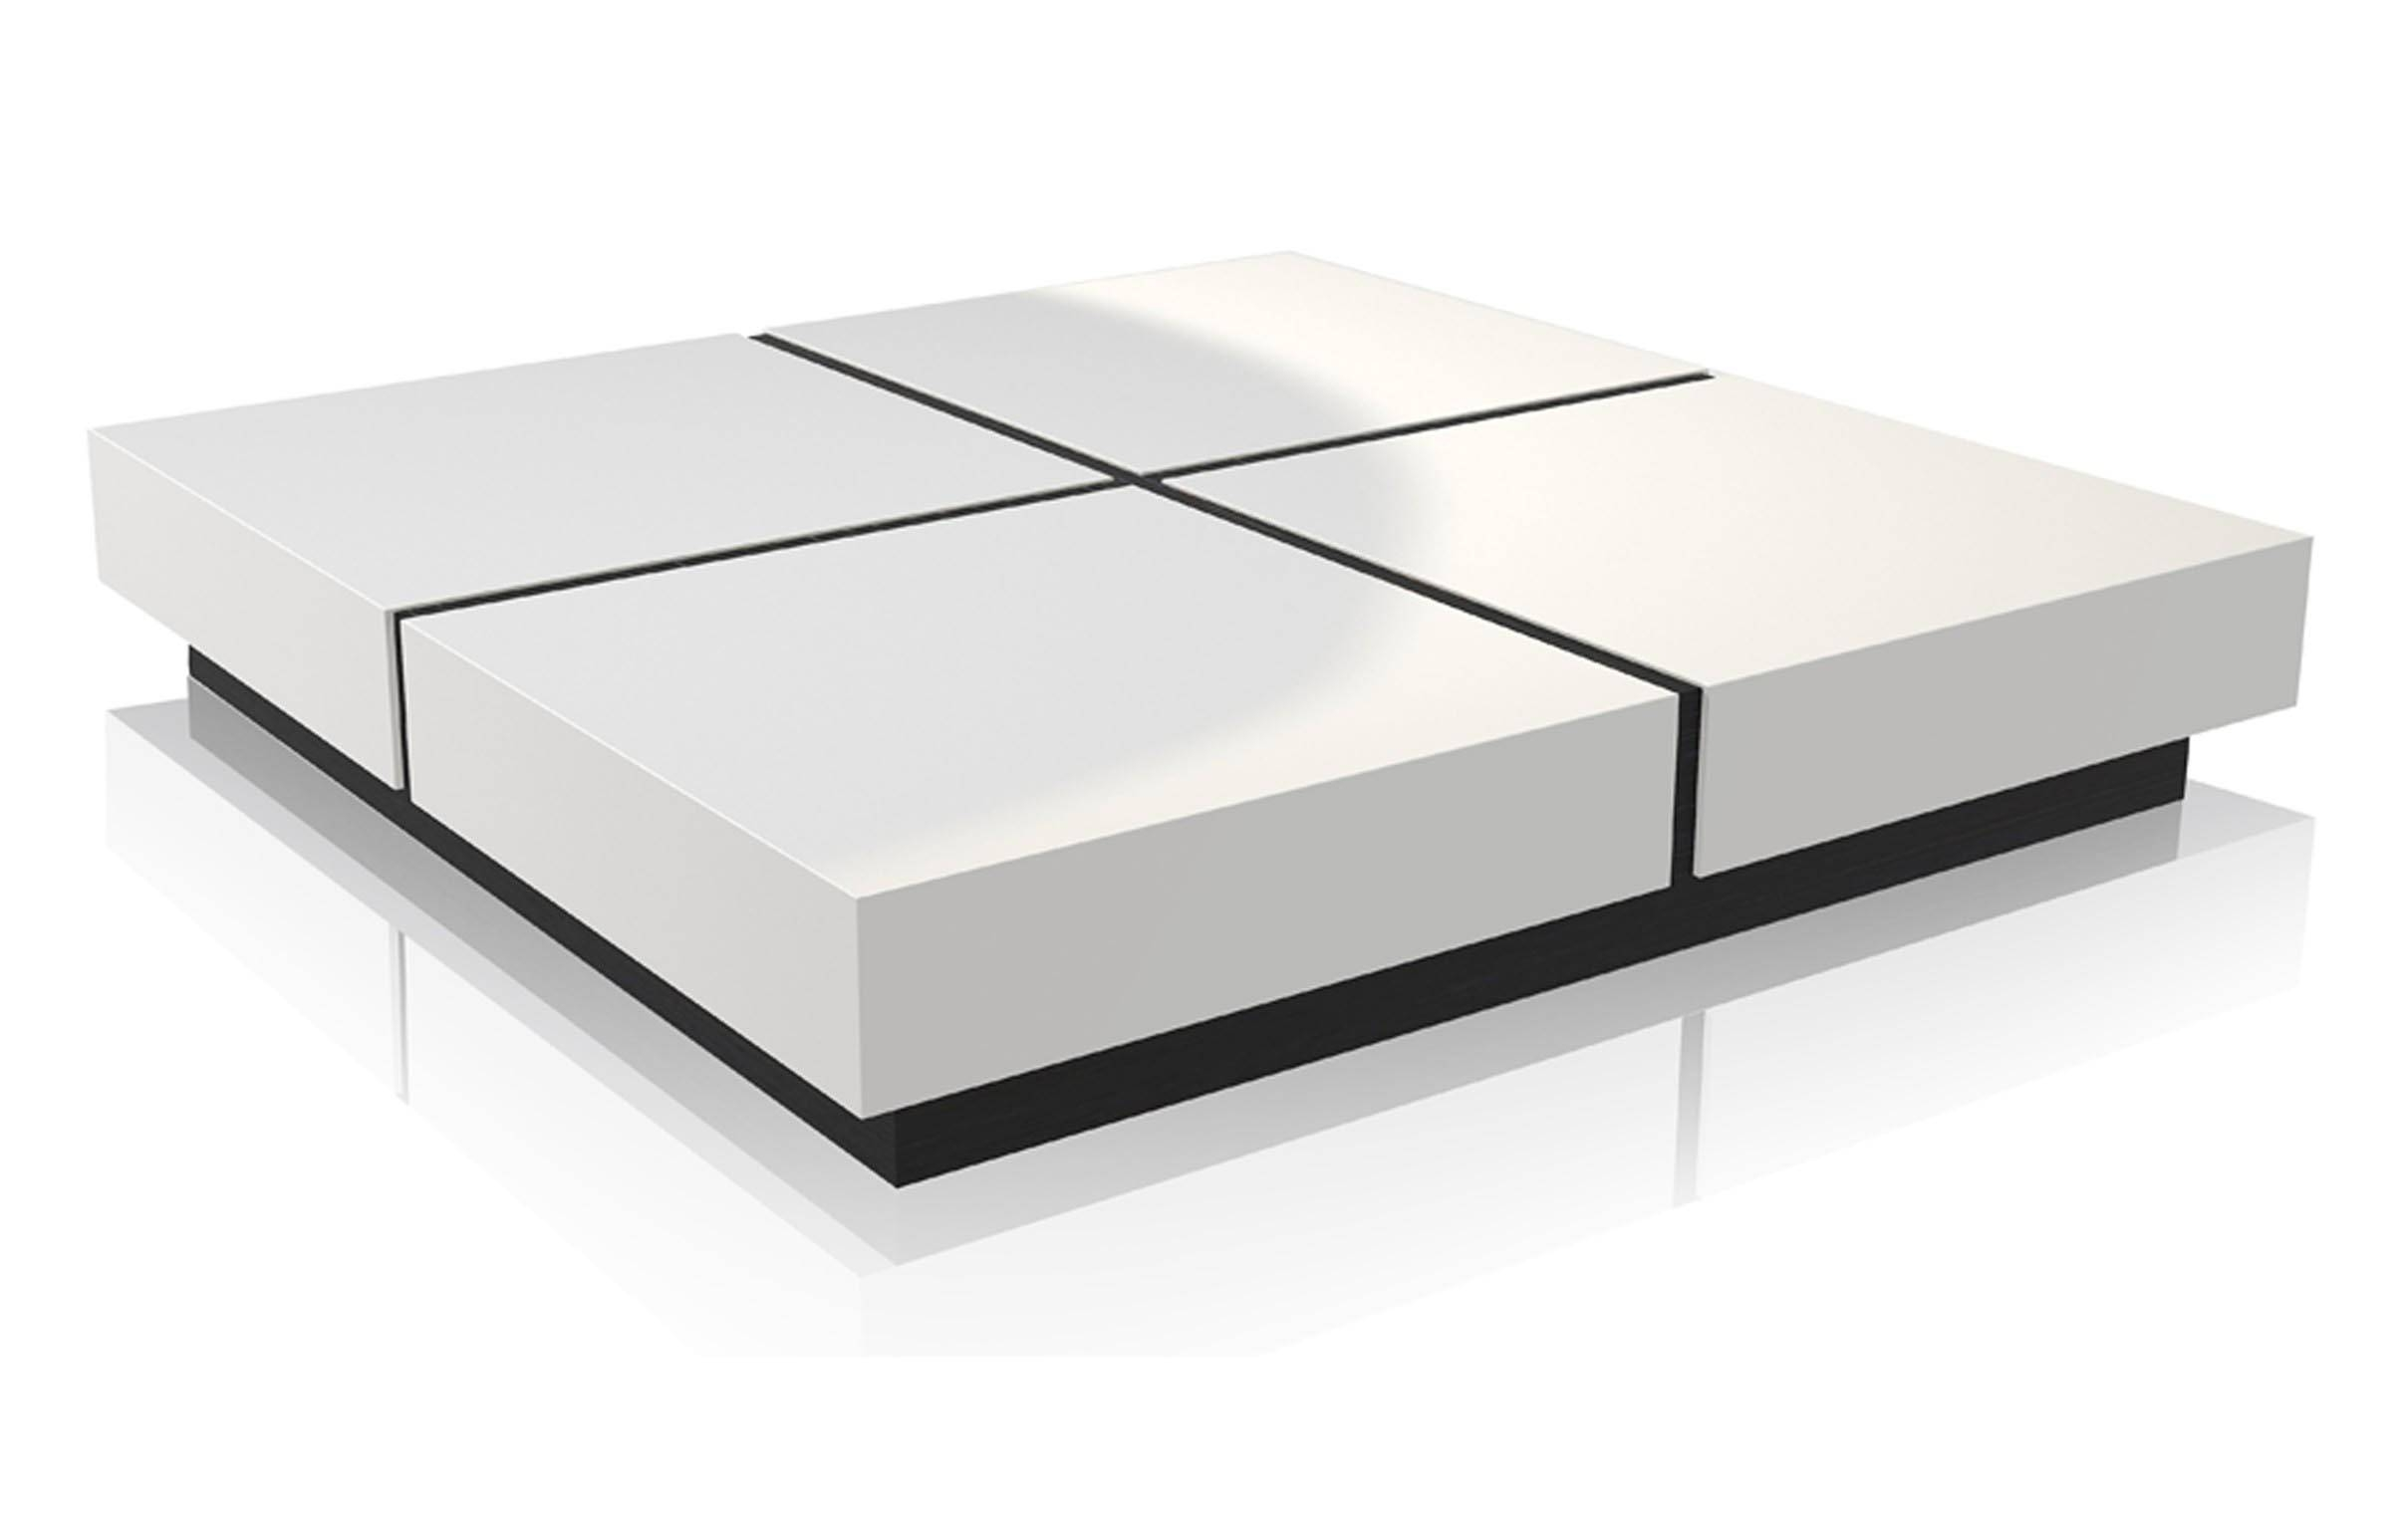 White Modern Coffee Table | Coffee Table Design Ideas in White And Glass Coffee Tables (Image 30 of 30)